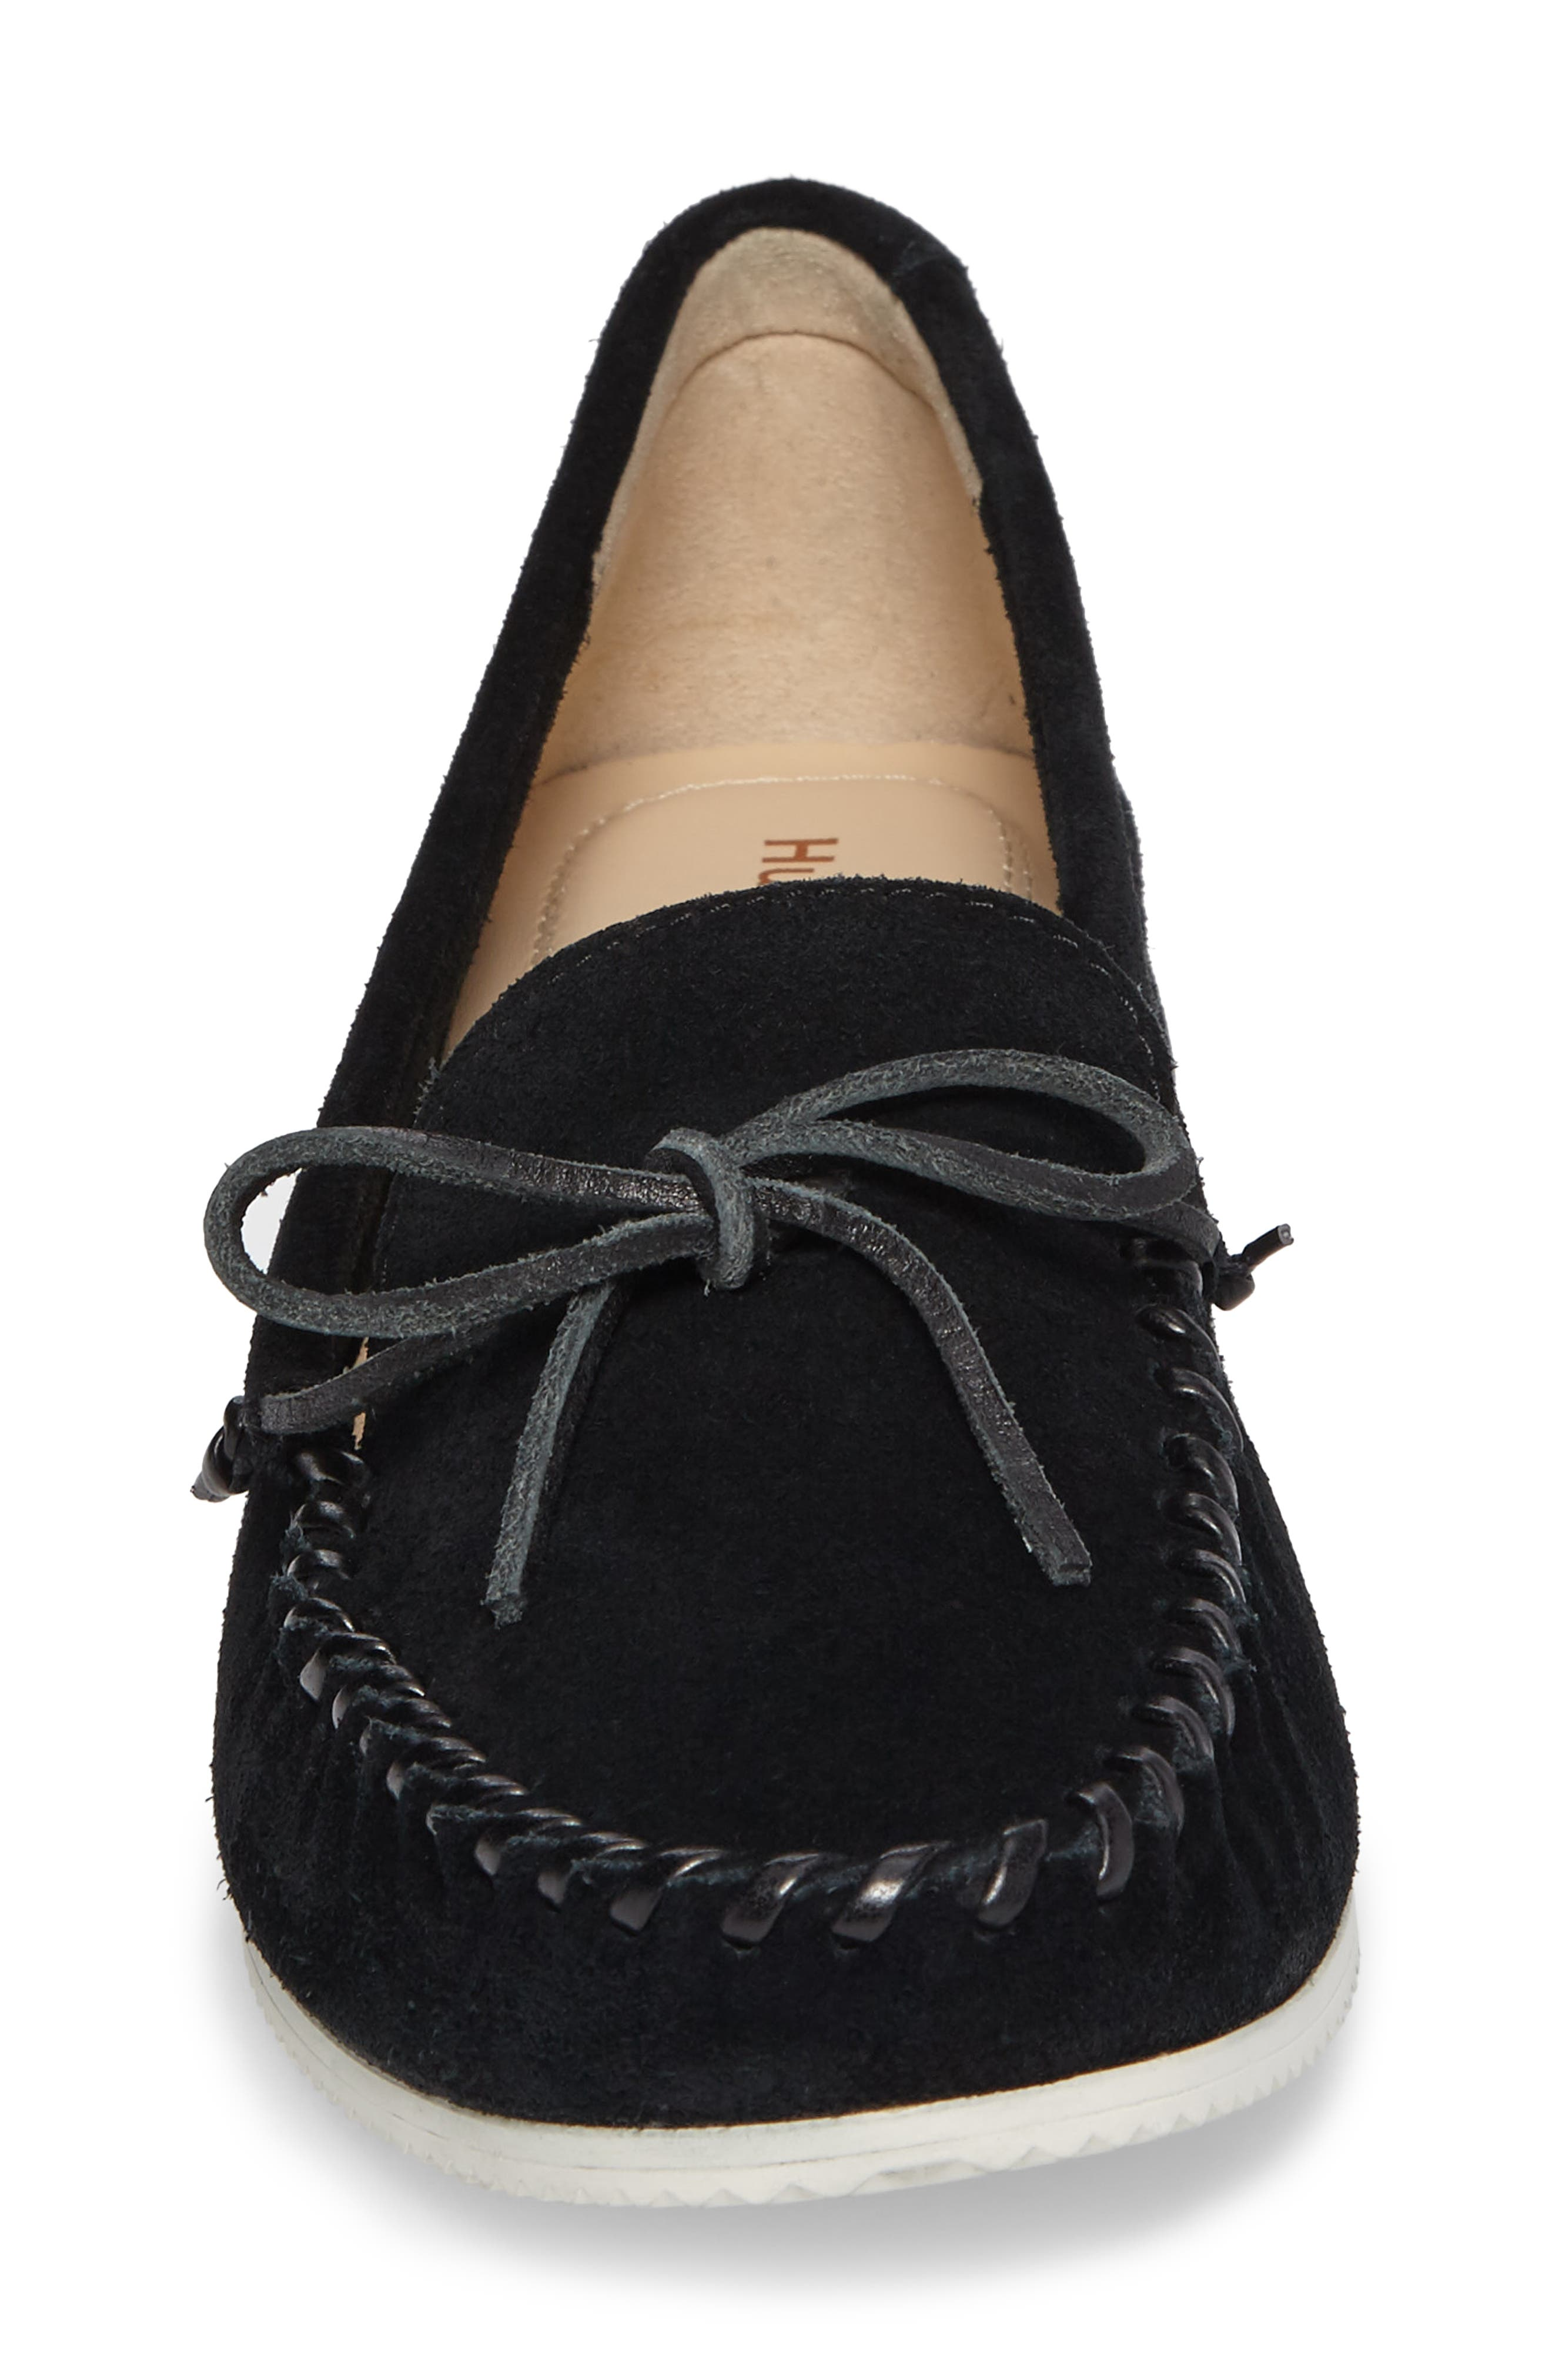 Larghetto Carine Concealed Wedge Moccasin,                             Alternate thumbnail 4, color,                             Black Suede